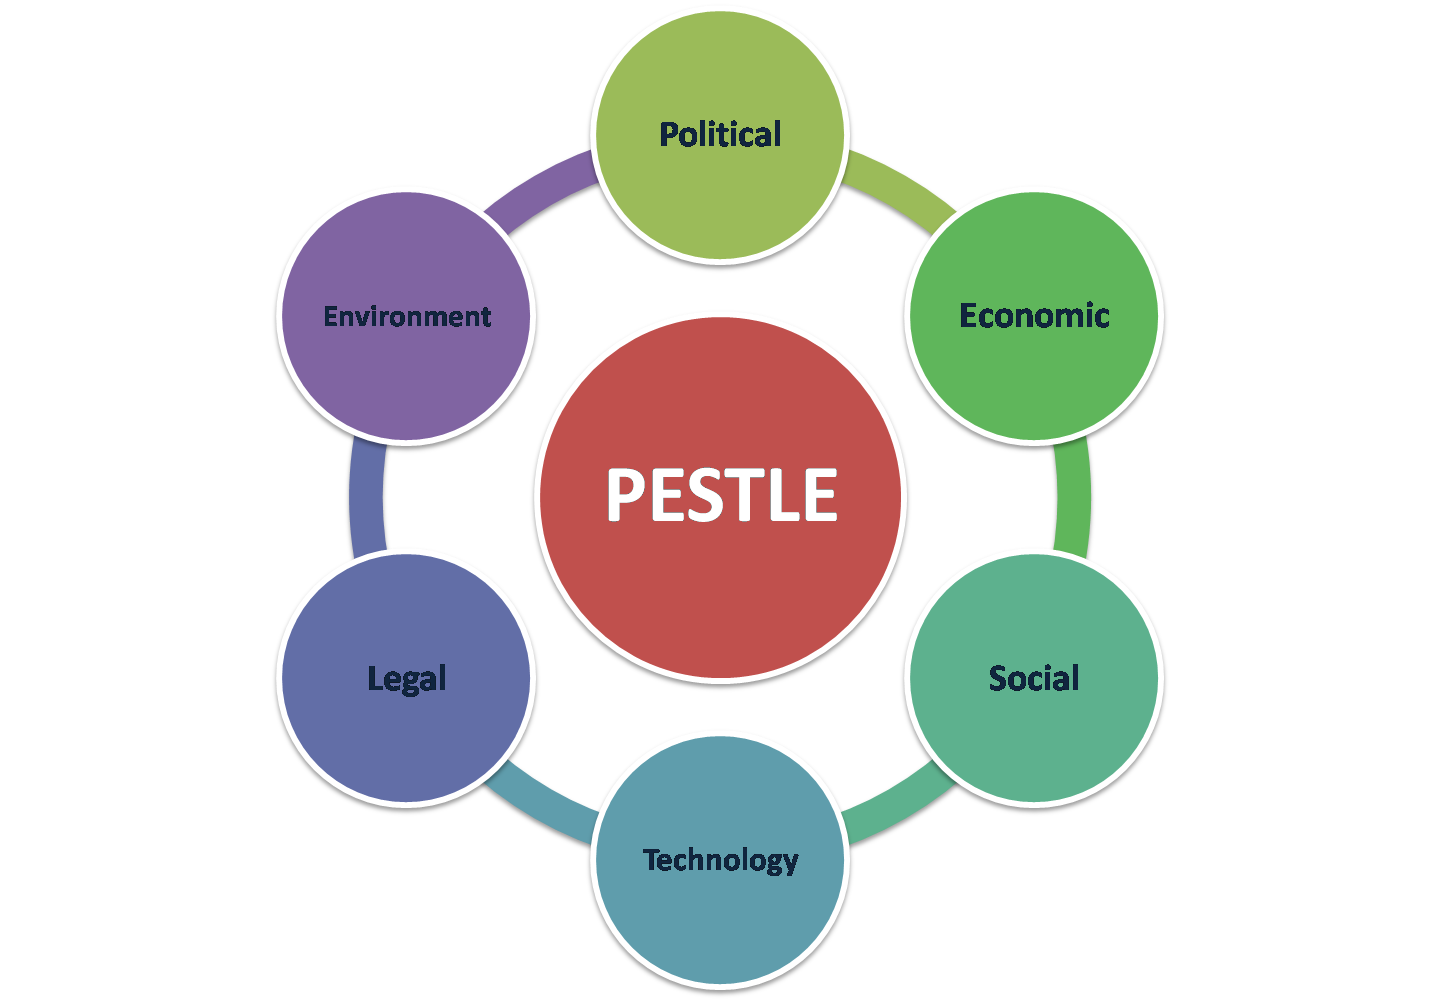 macro environement influences pestle analysis The tool tasked with conducting an external analysis of the macro environment is pest while macro environment environment and micro environment analysis.